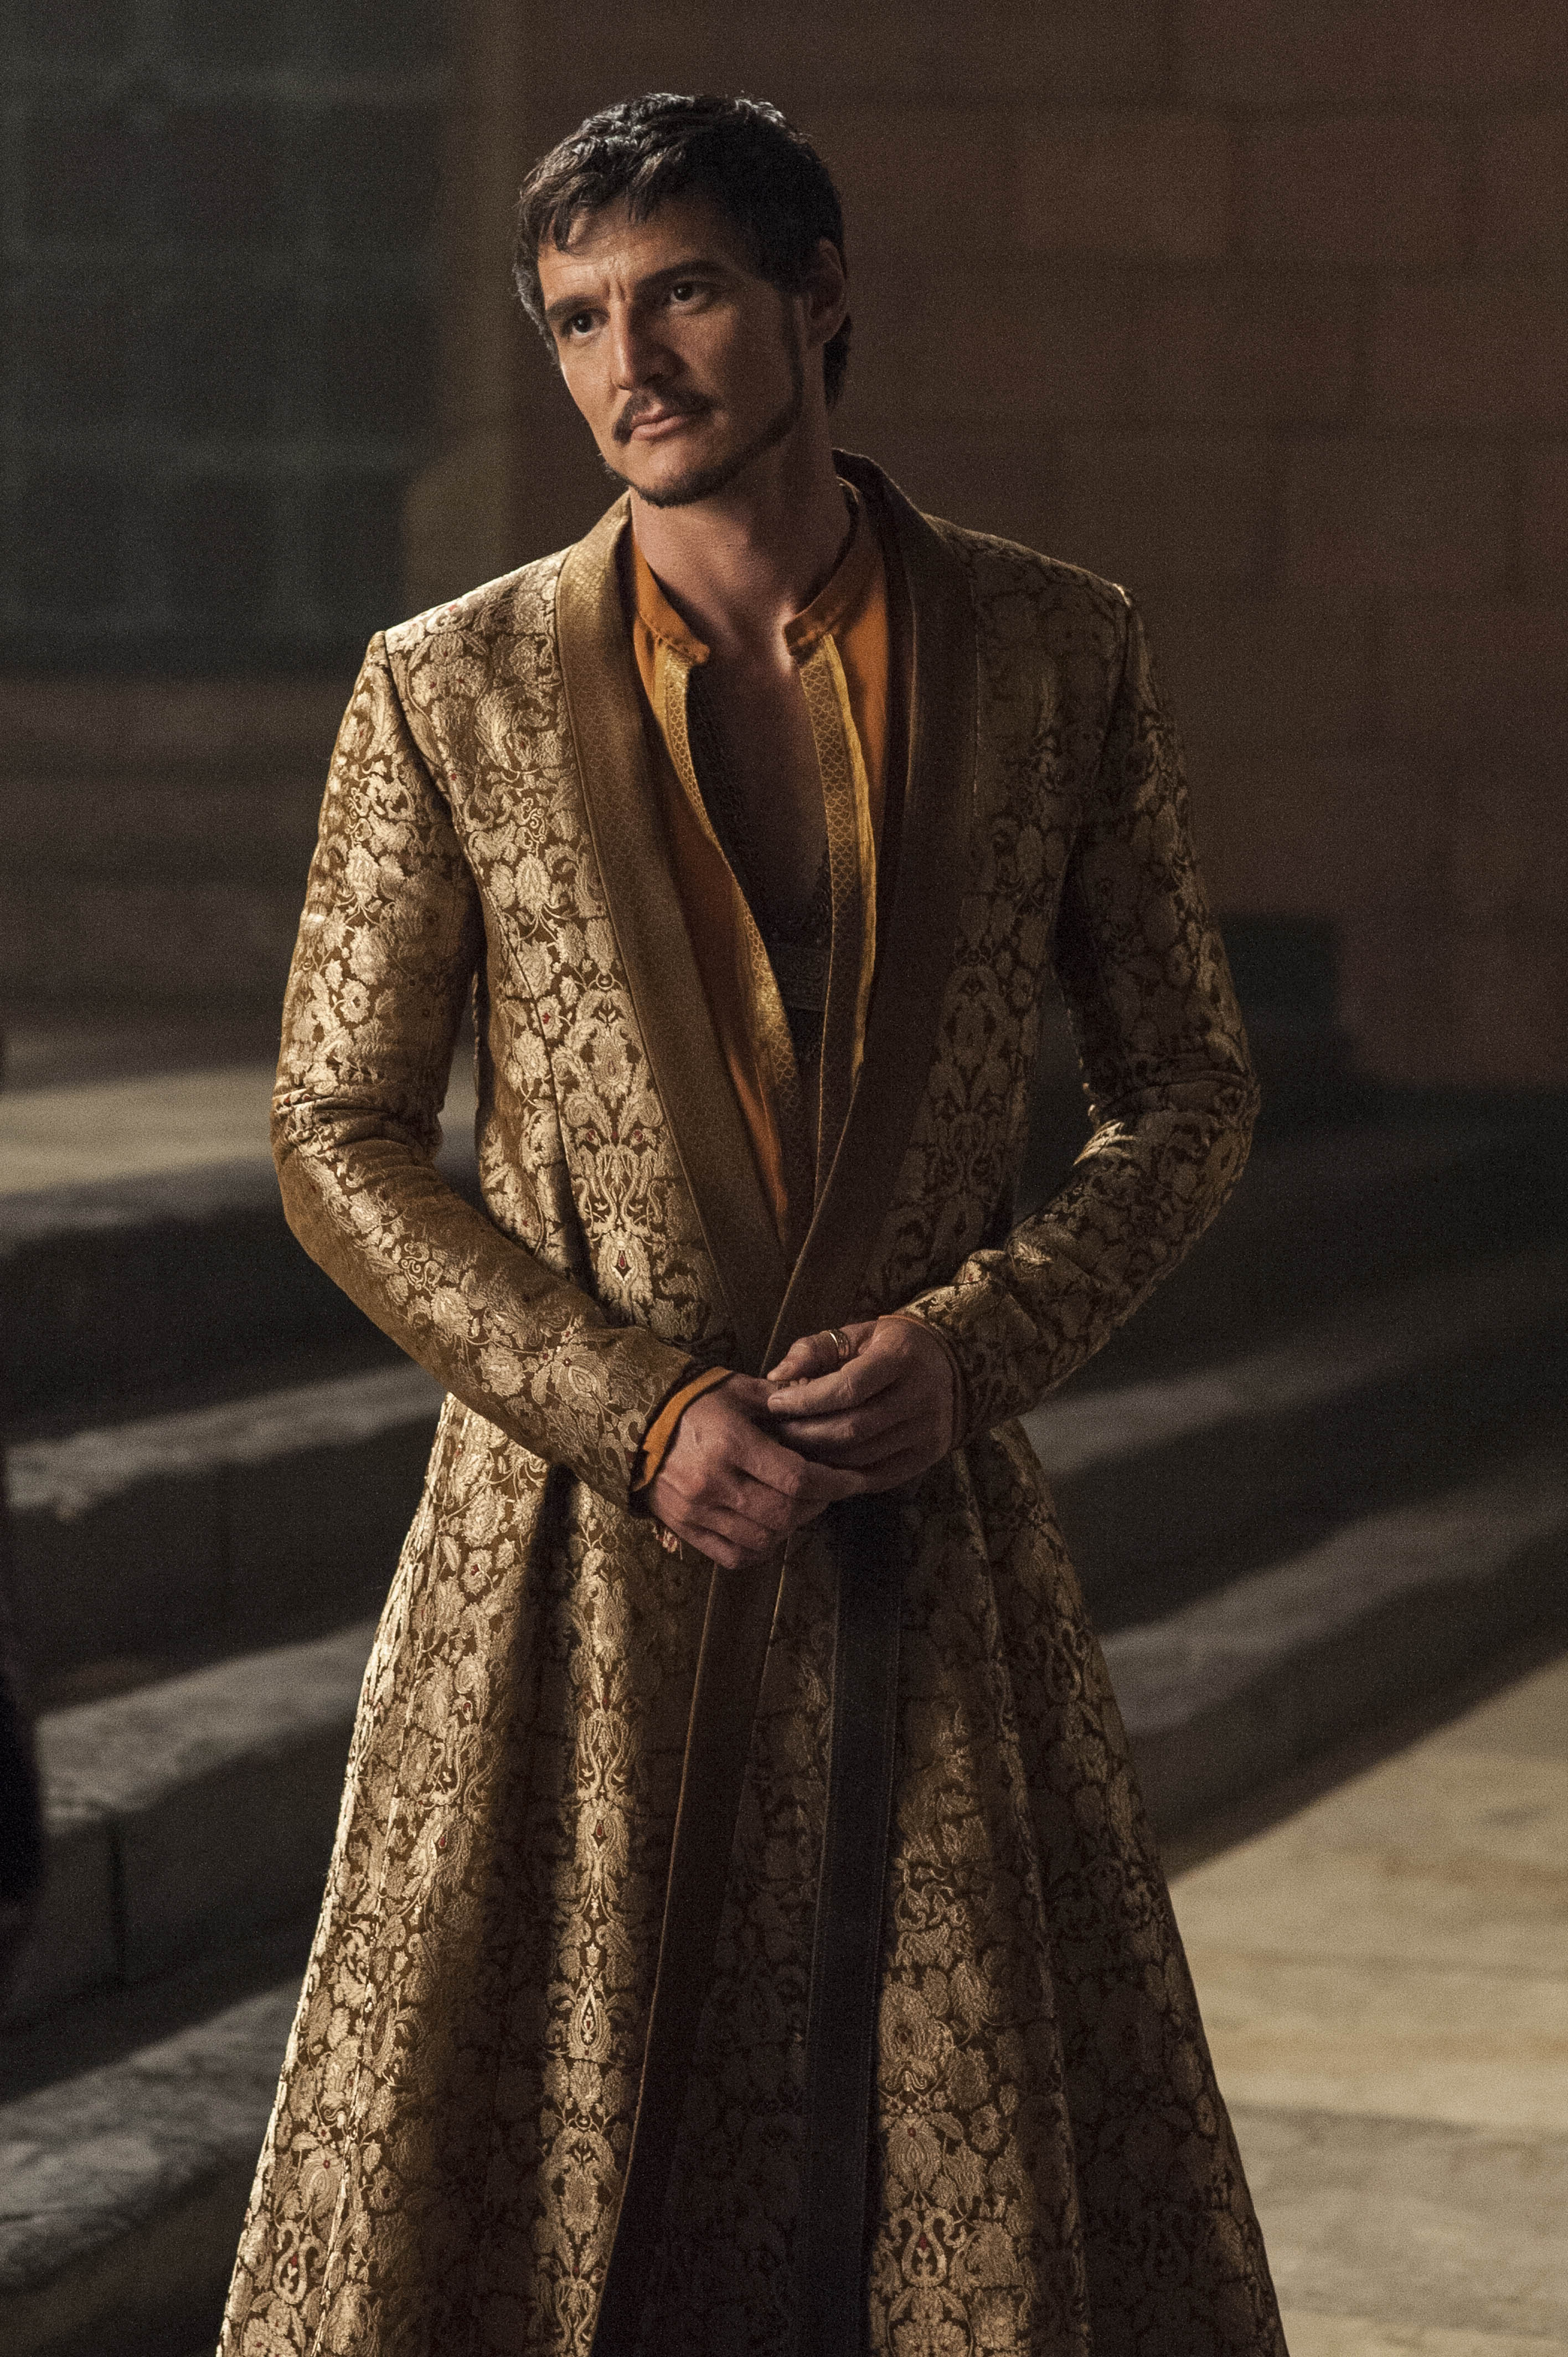 oberyn martell house martell photo 37118334 fanpop. Black Bedroom Furniture Sets. Home Design Ideas